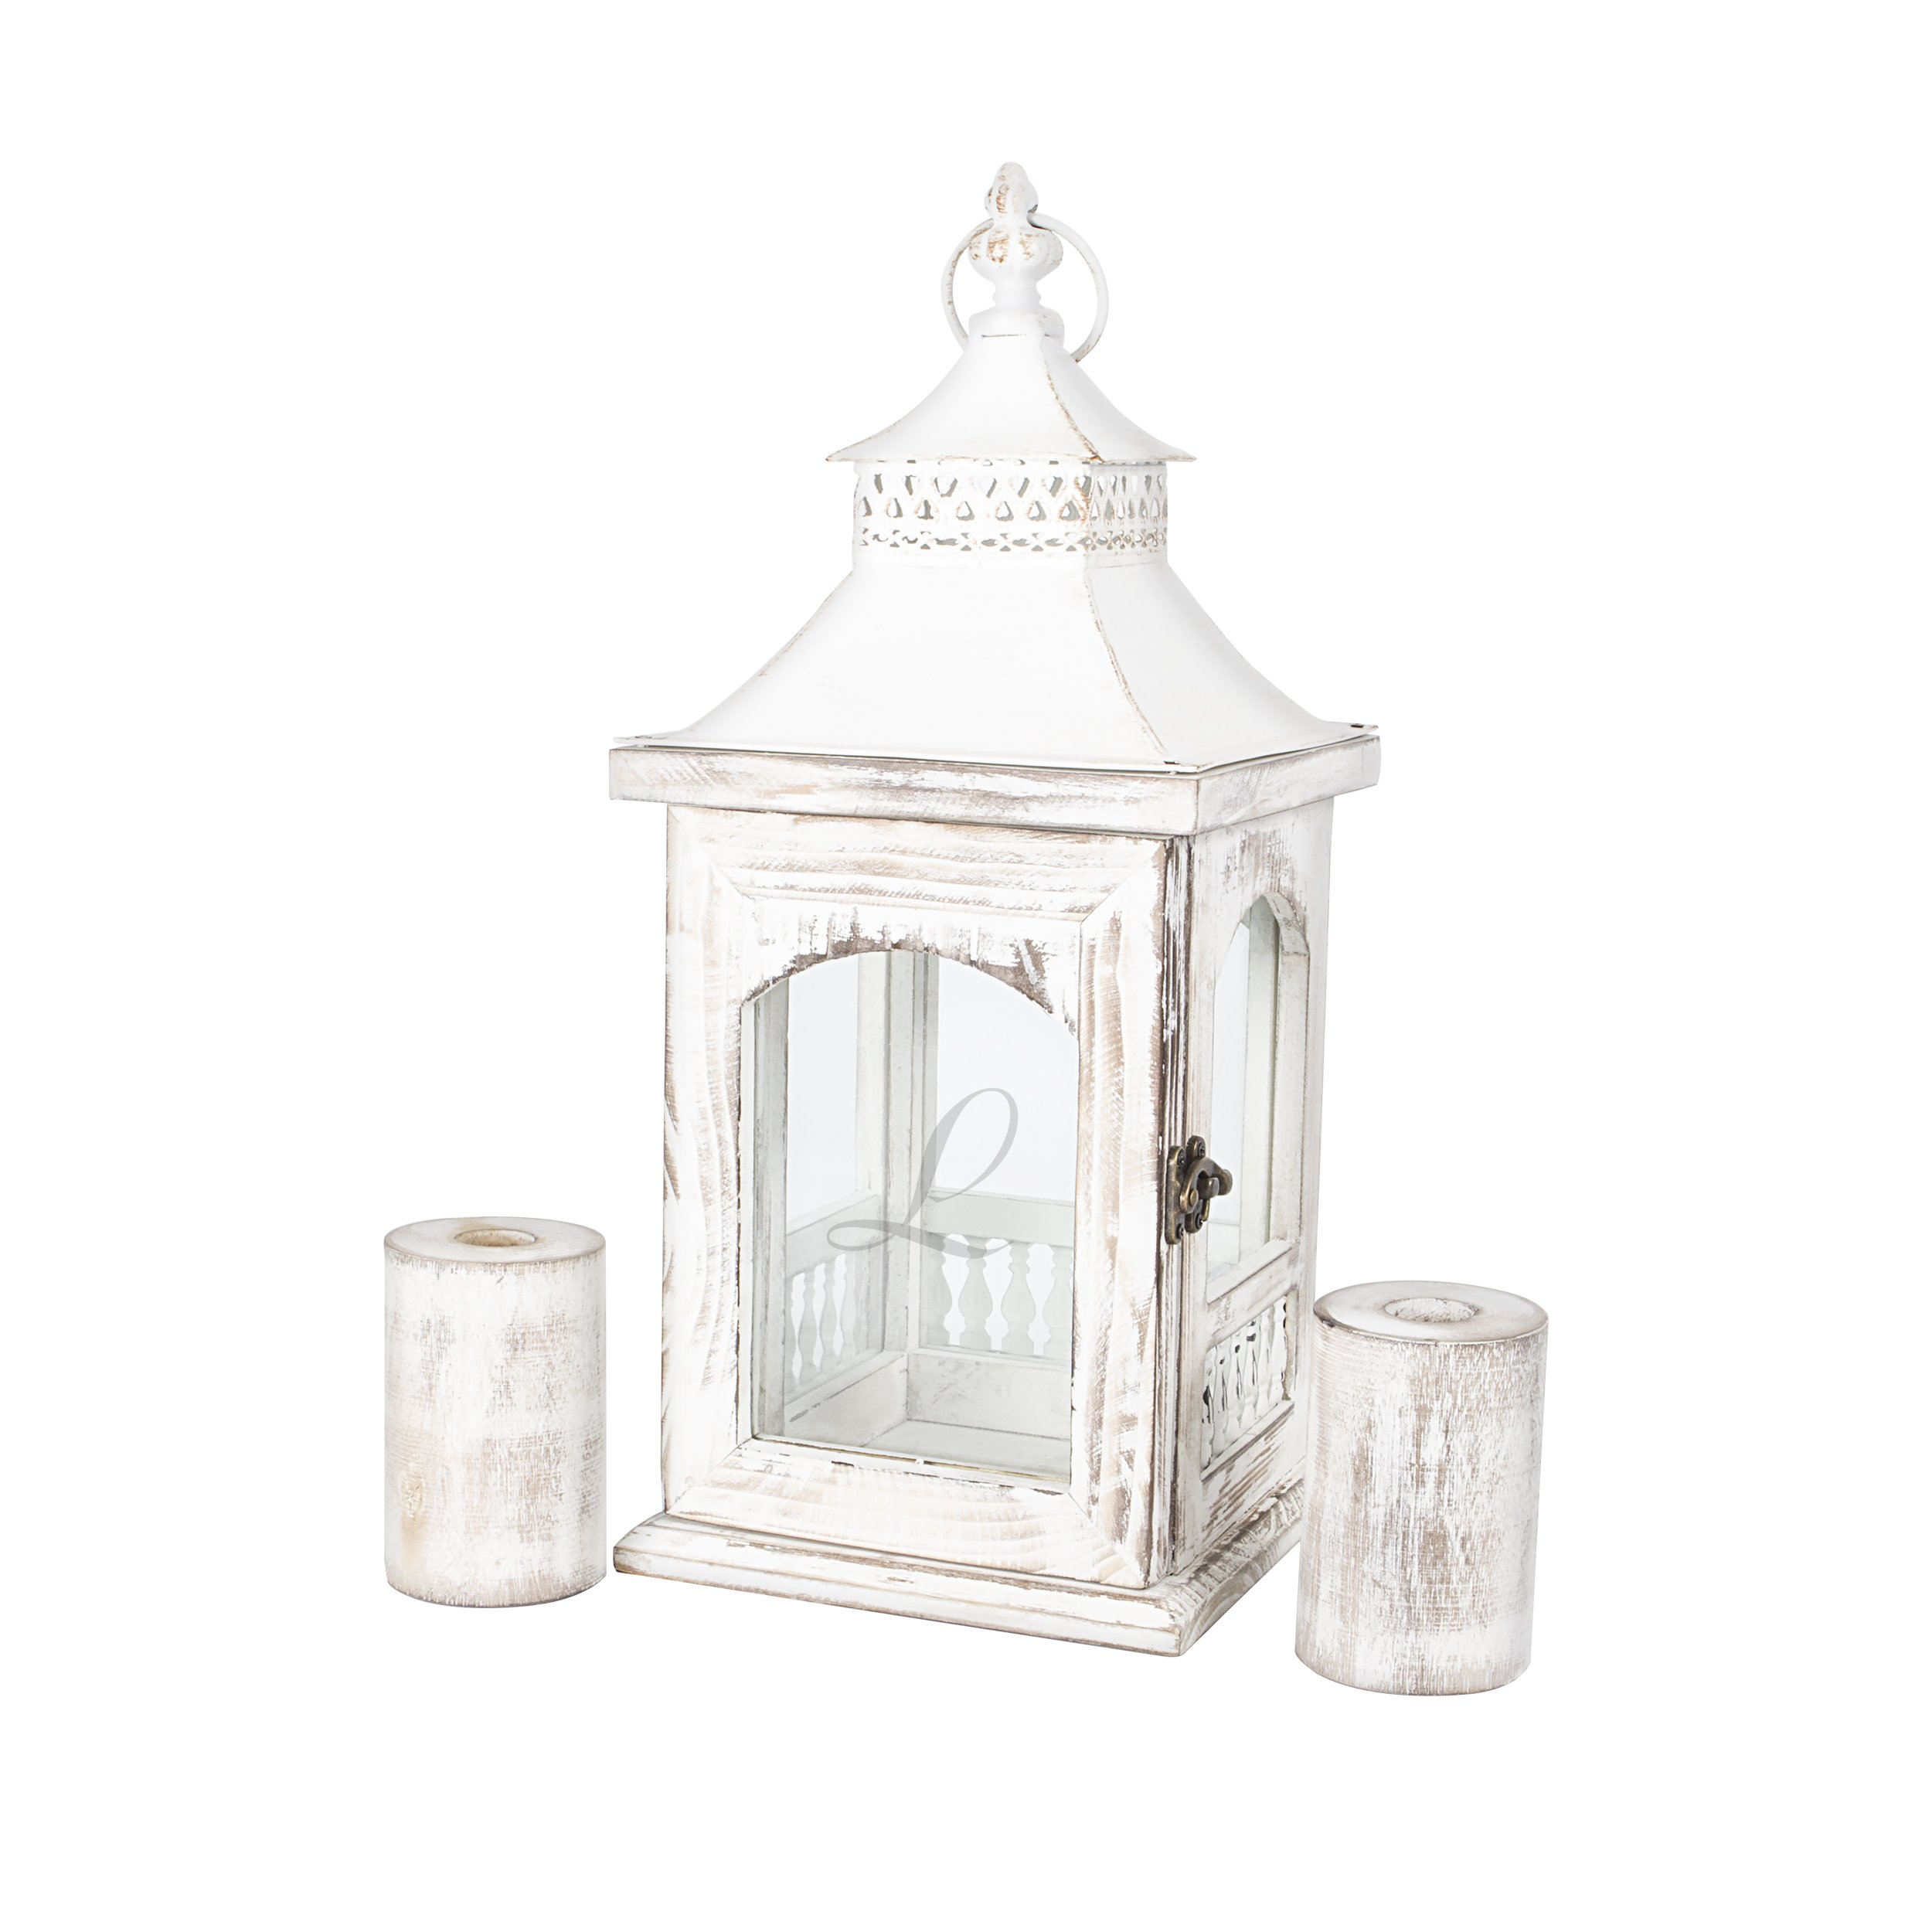 Cathy's Concepts Personalized Rustic Unity Lantern with Candle Holder, Letter L by Cathy's Concepts